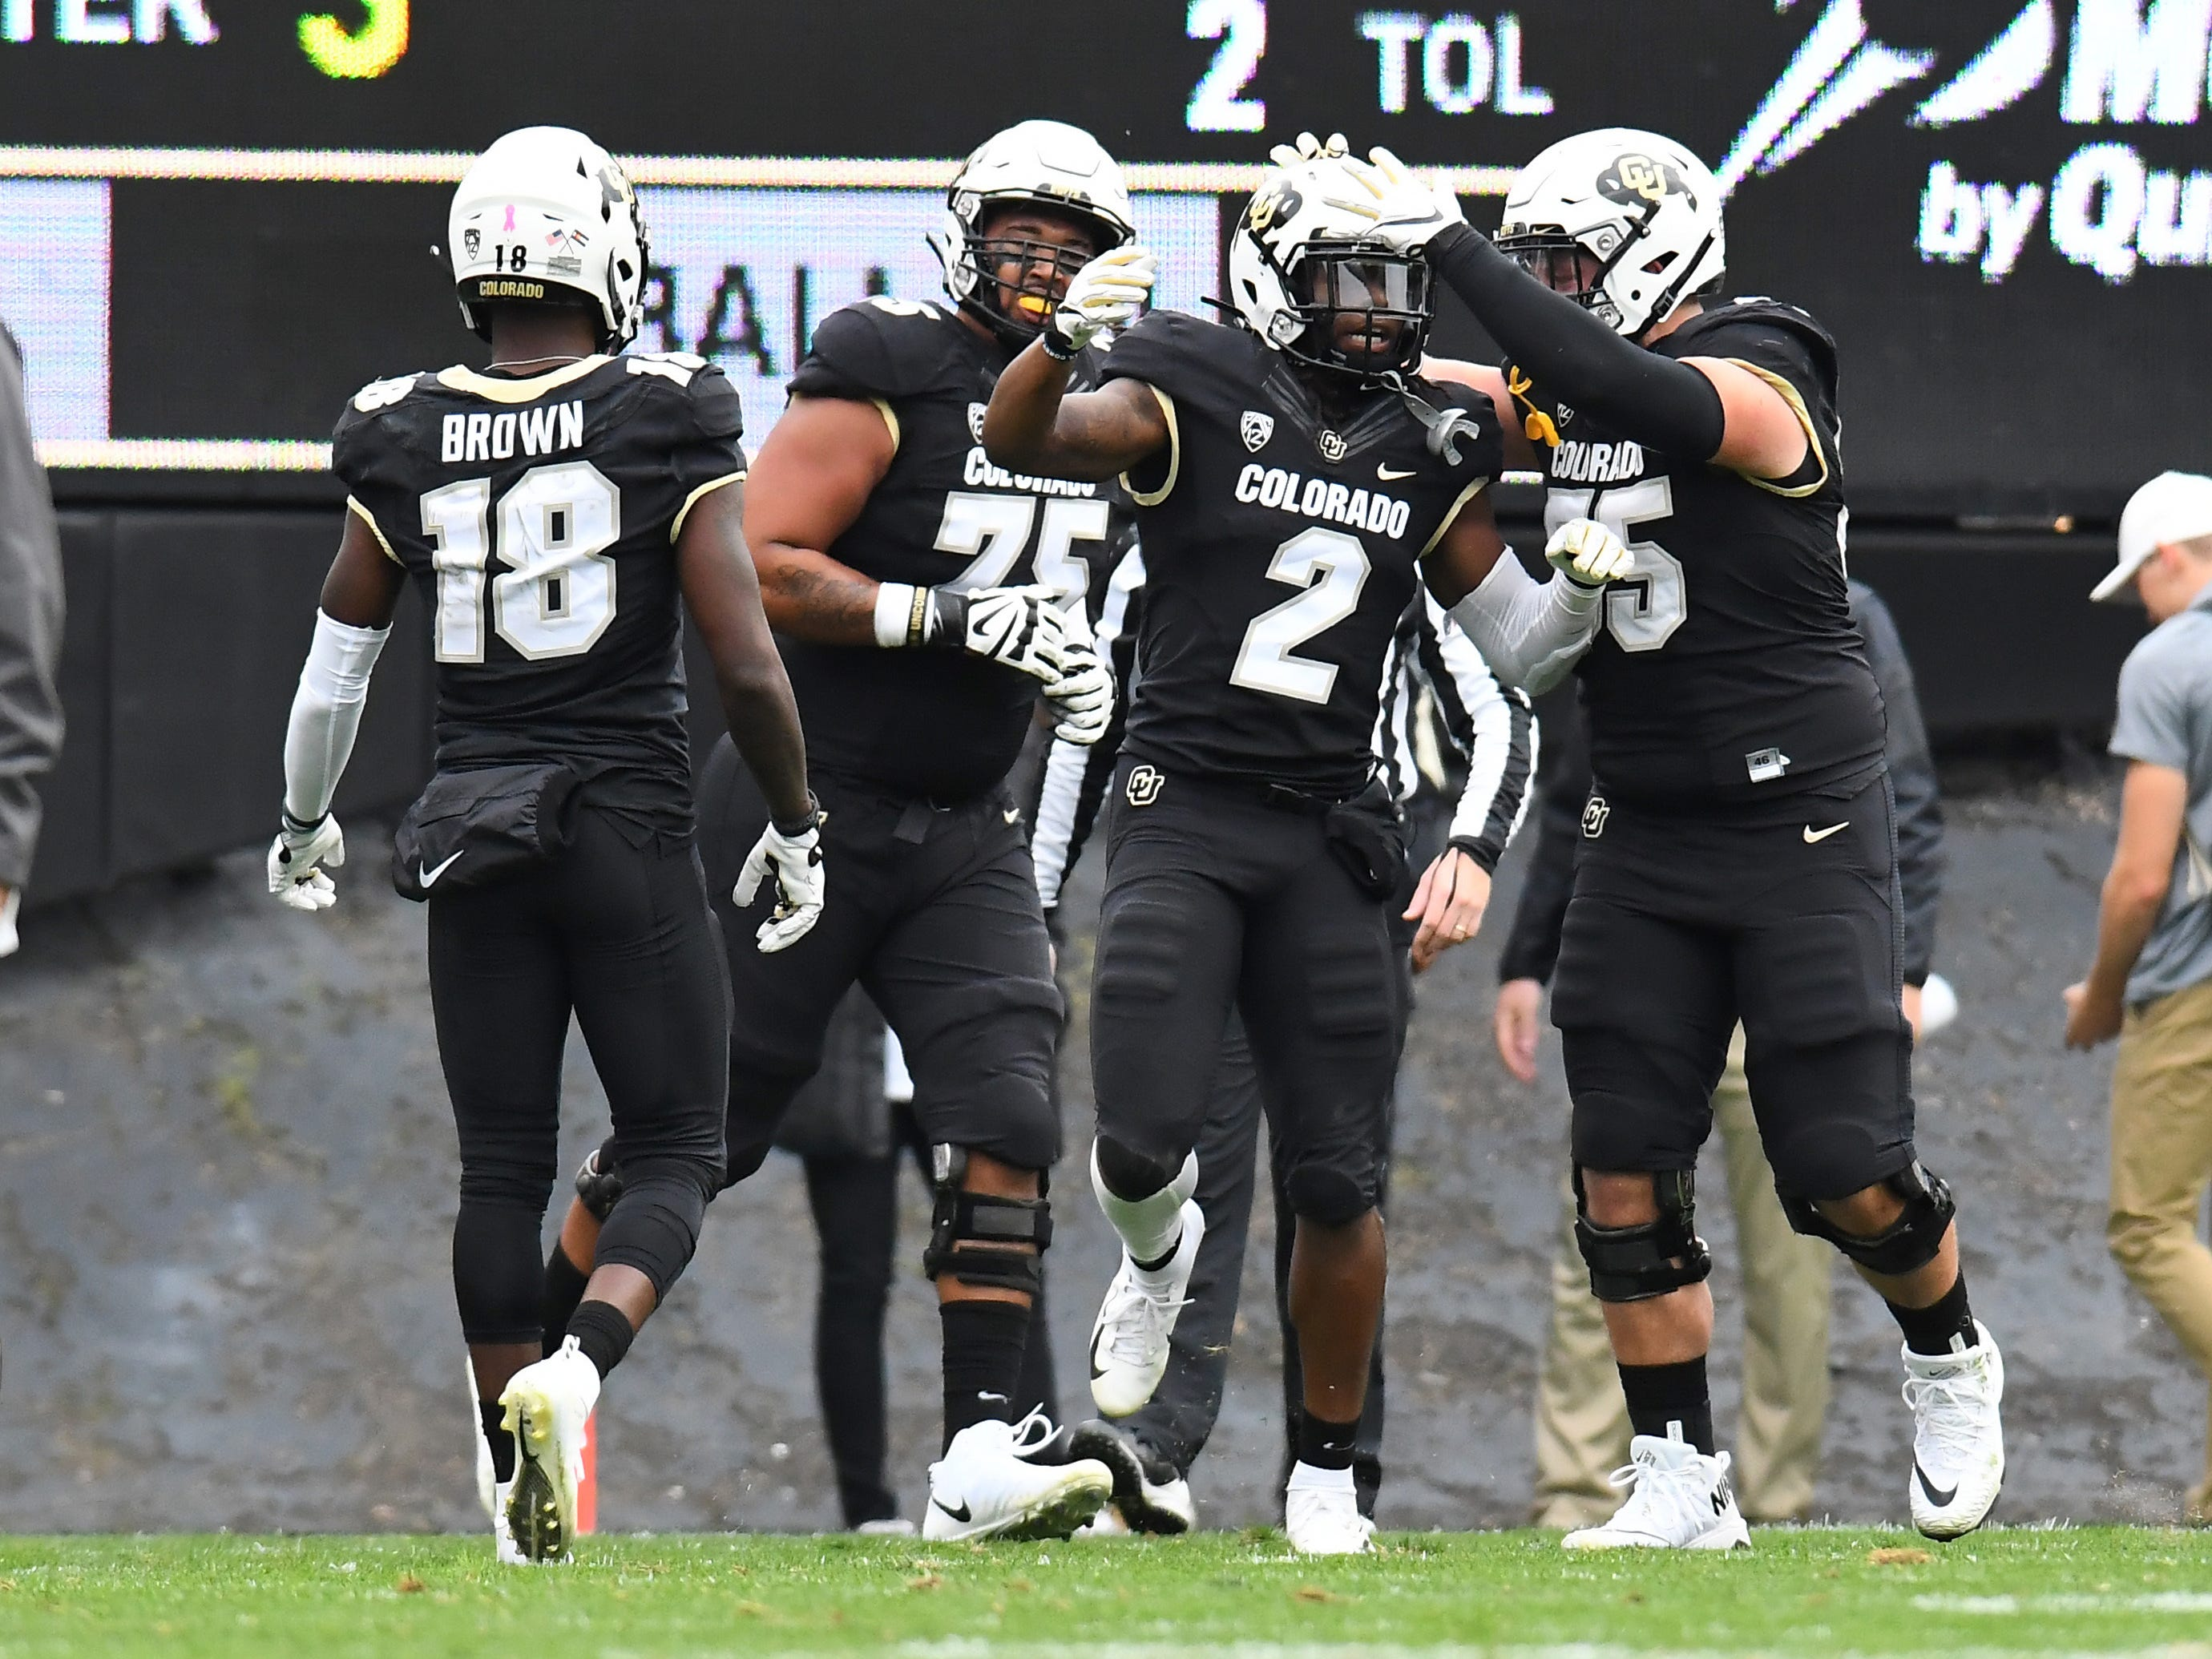 Oct 6, 2018; Boulder, CO, USA; Colorado Buffaloes wide receiver Laviska Shenault Jr. (2) celebrates his third touchdown of the game against the Arizona State Sun Devils during the fourth quarter at Folsom Field. Mandatory Credit: Ron Chenoy-USA TODAY Sports